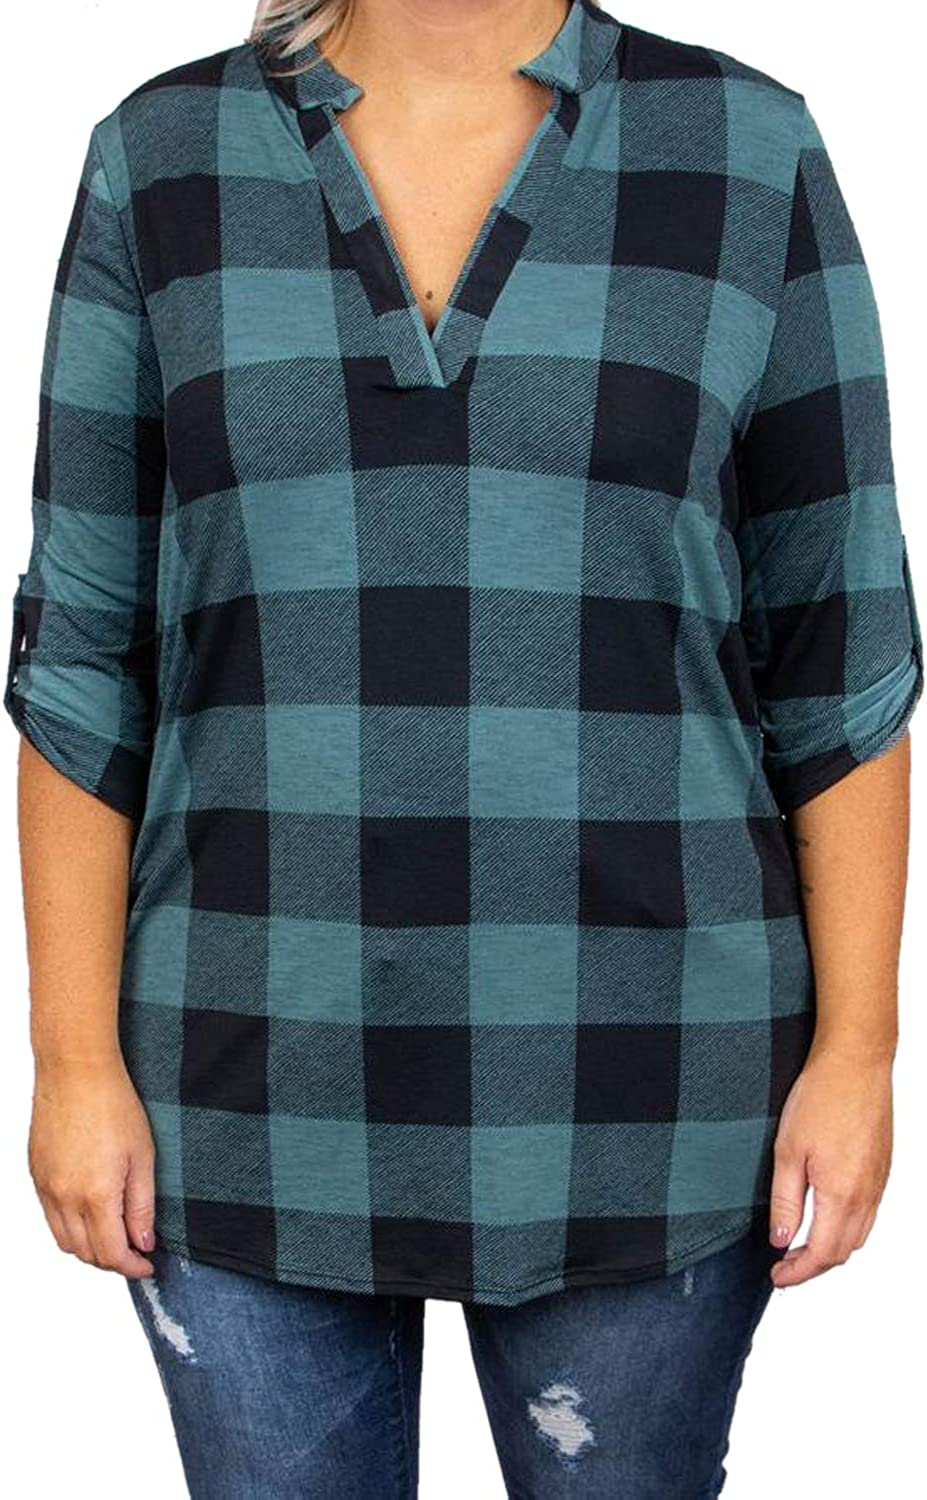 Womens Plus Size Plaid Shirts Casual V Neck 3//4 Sleeve Tunic Tops Checked Cuffed Blouse